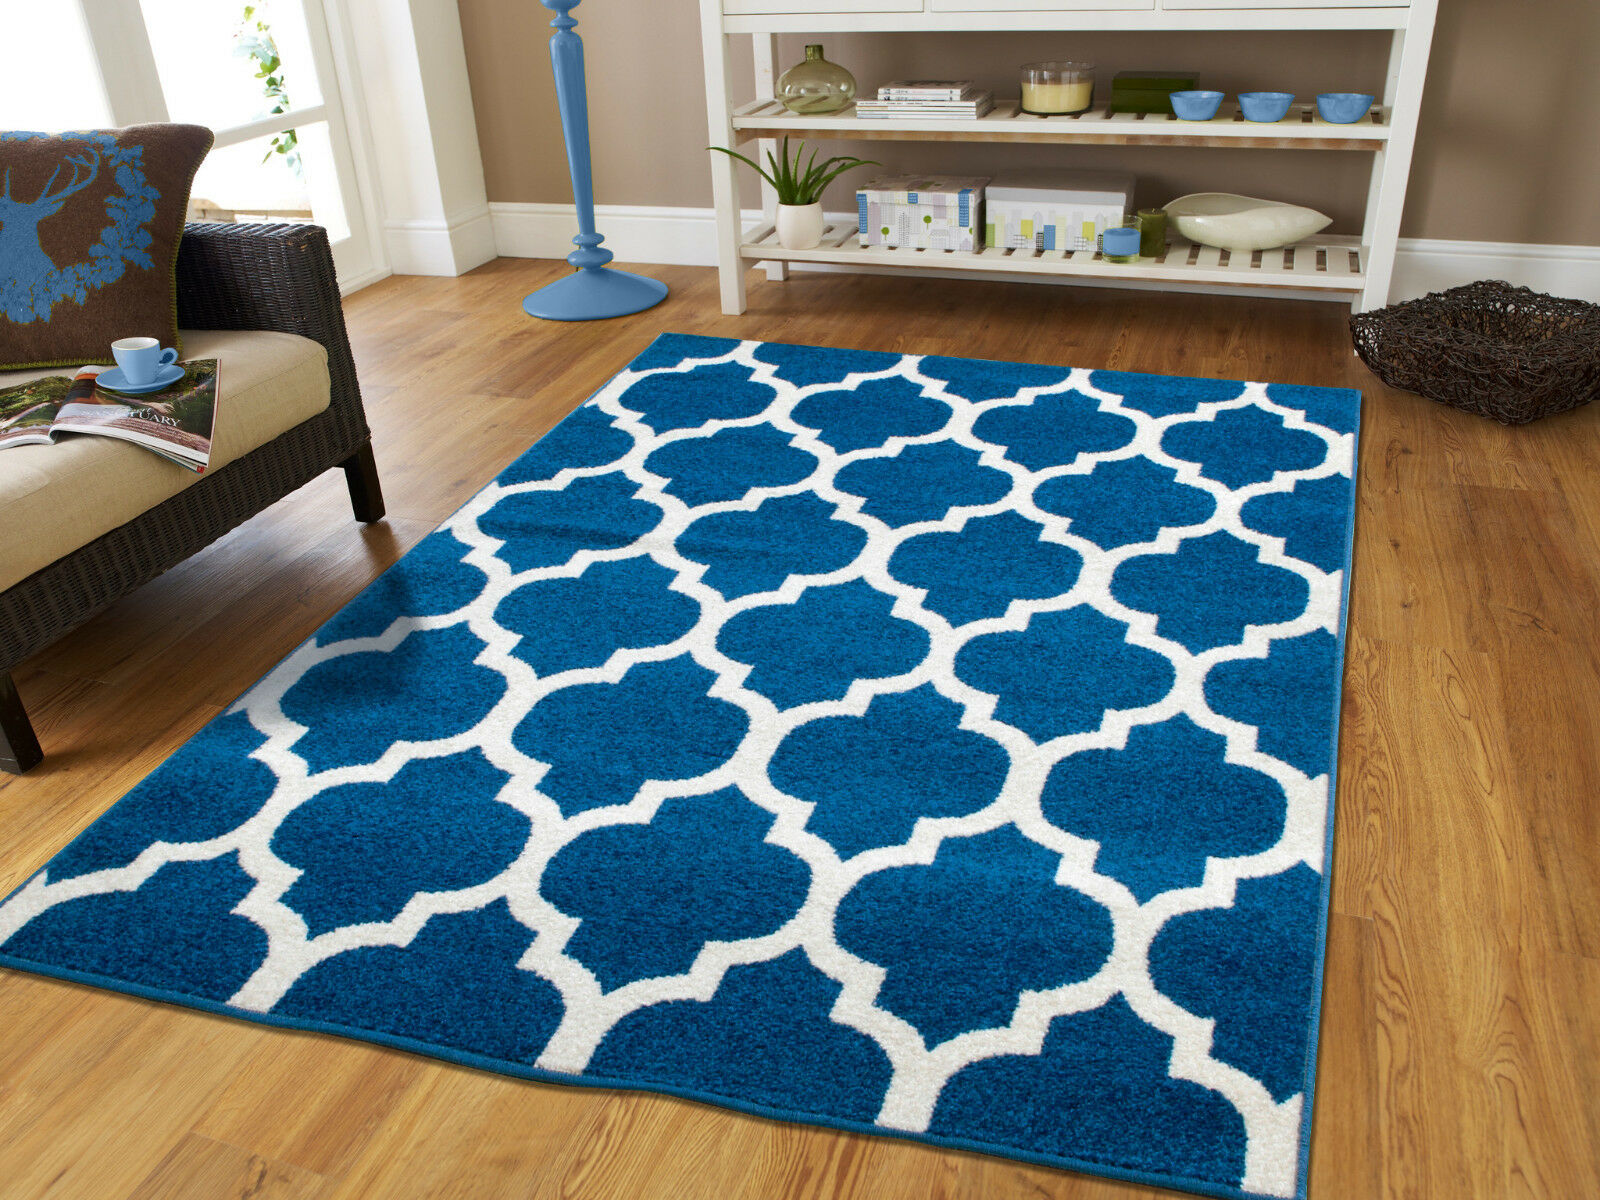 Picture of: Linon Rugs Silhouette Yellow Key Rug 5 X 7 For Sale Online Ebay